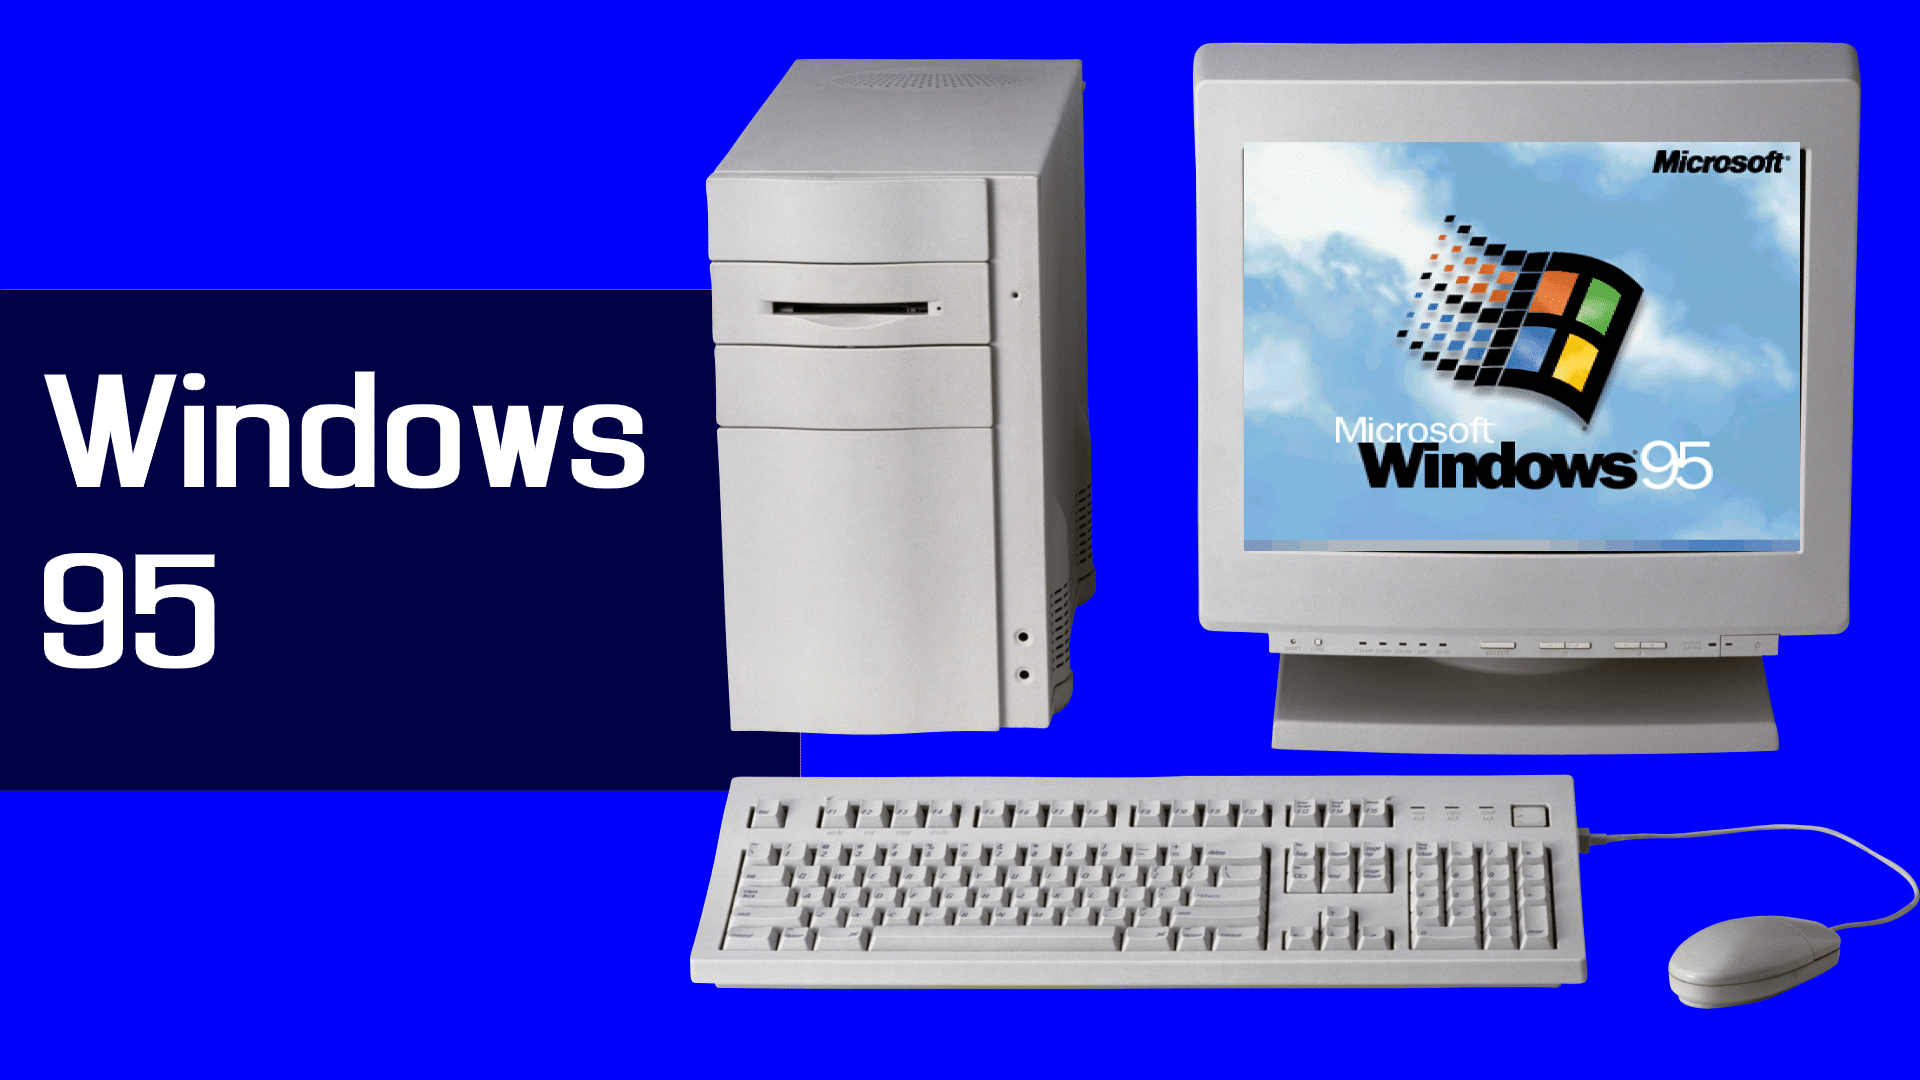 Riscopriamo Windows 95 su Windows 10